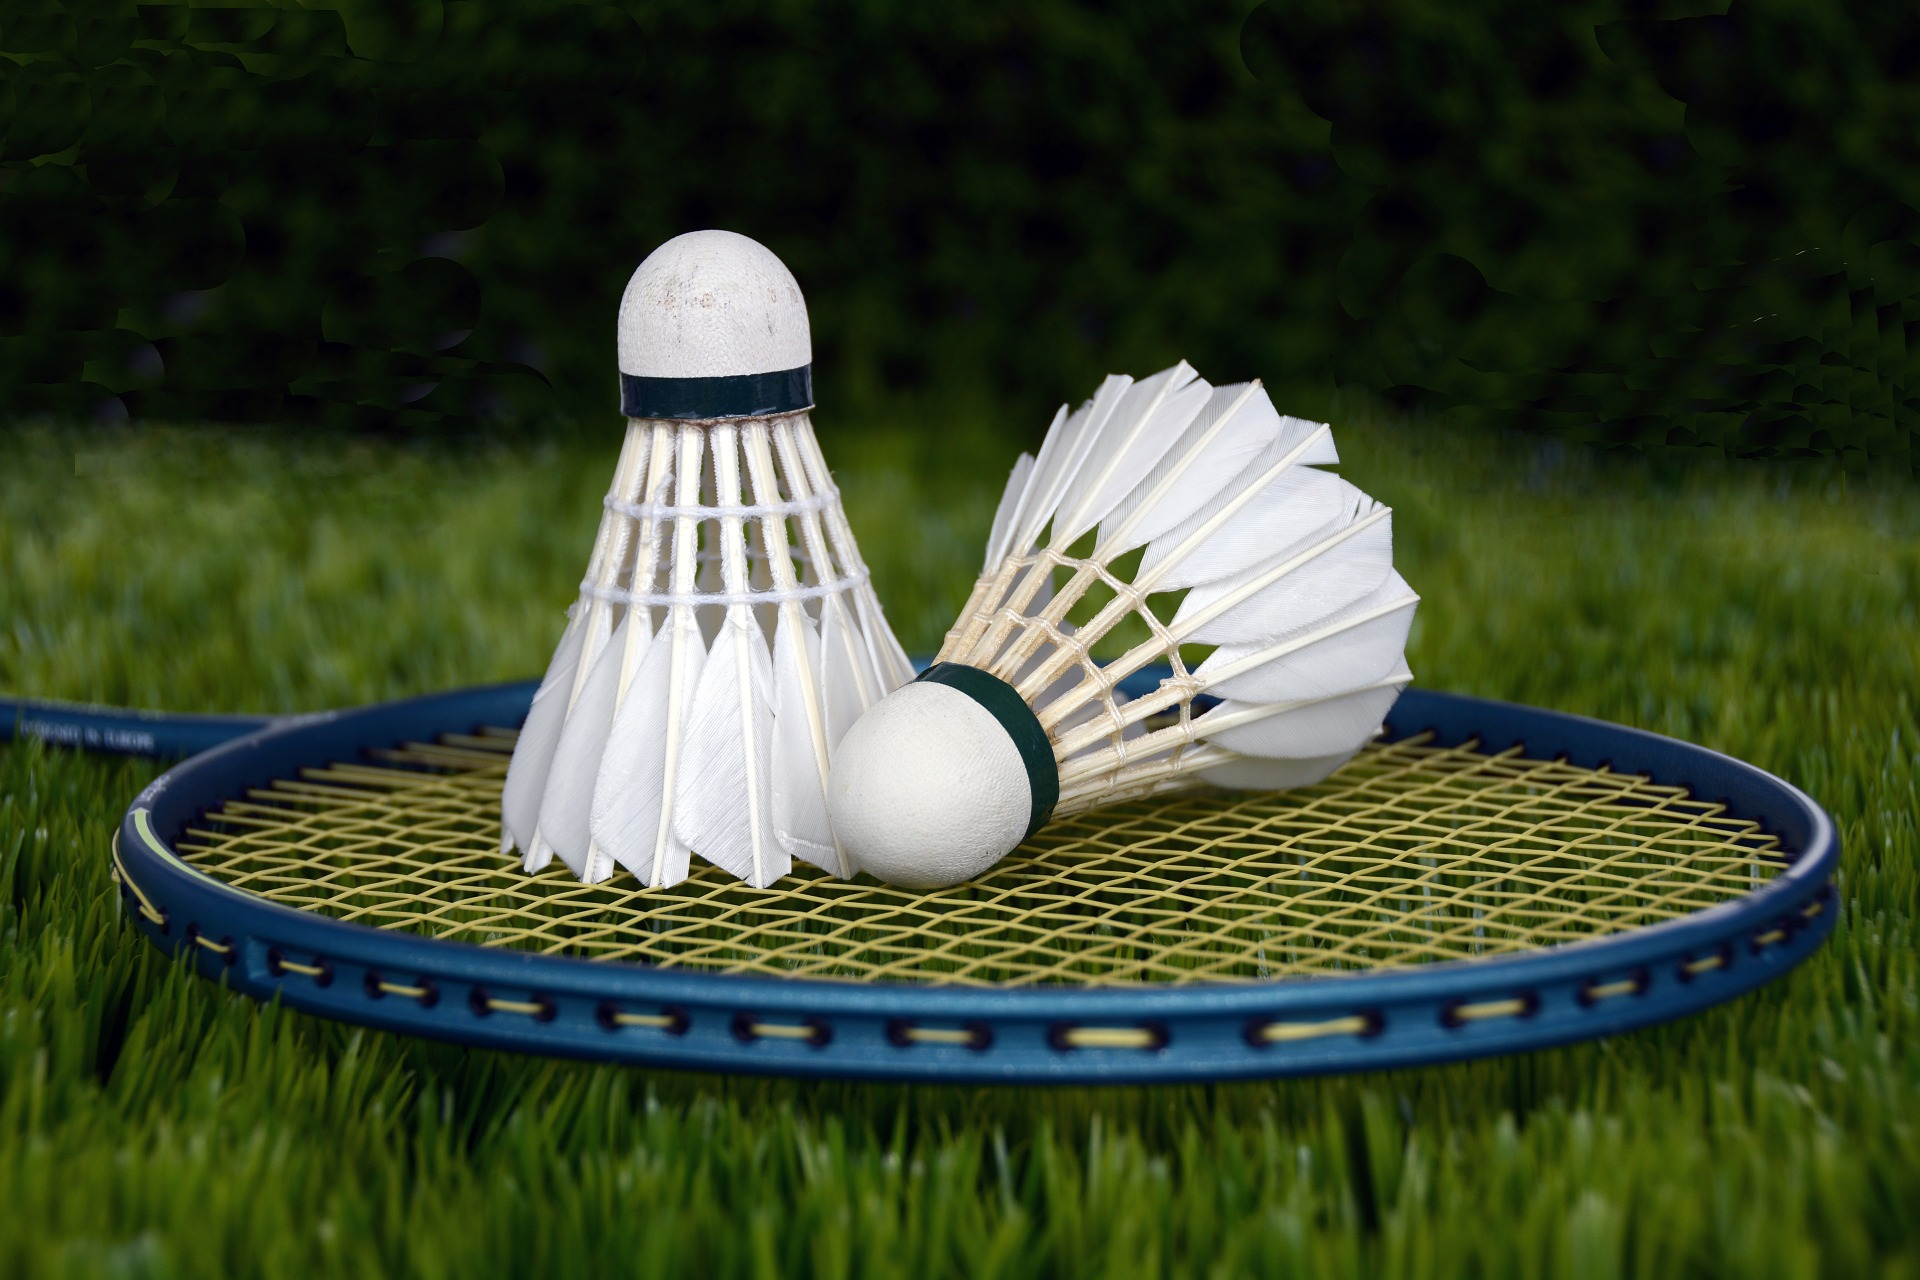 Badminton: Six Health Benefits And Reasons To Play